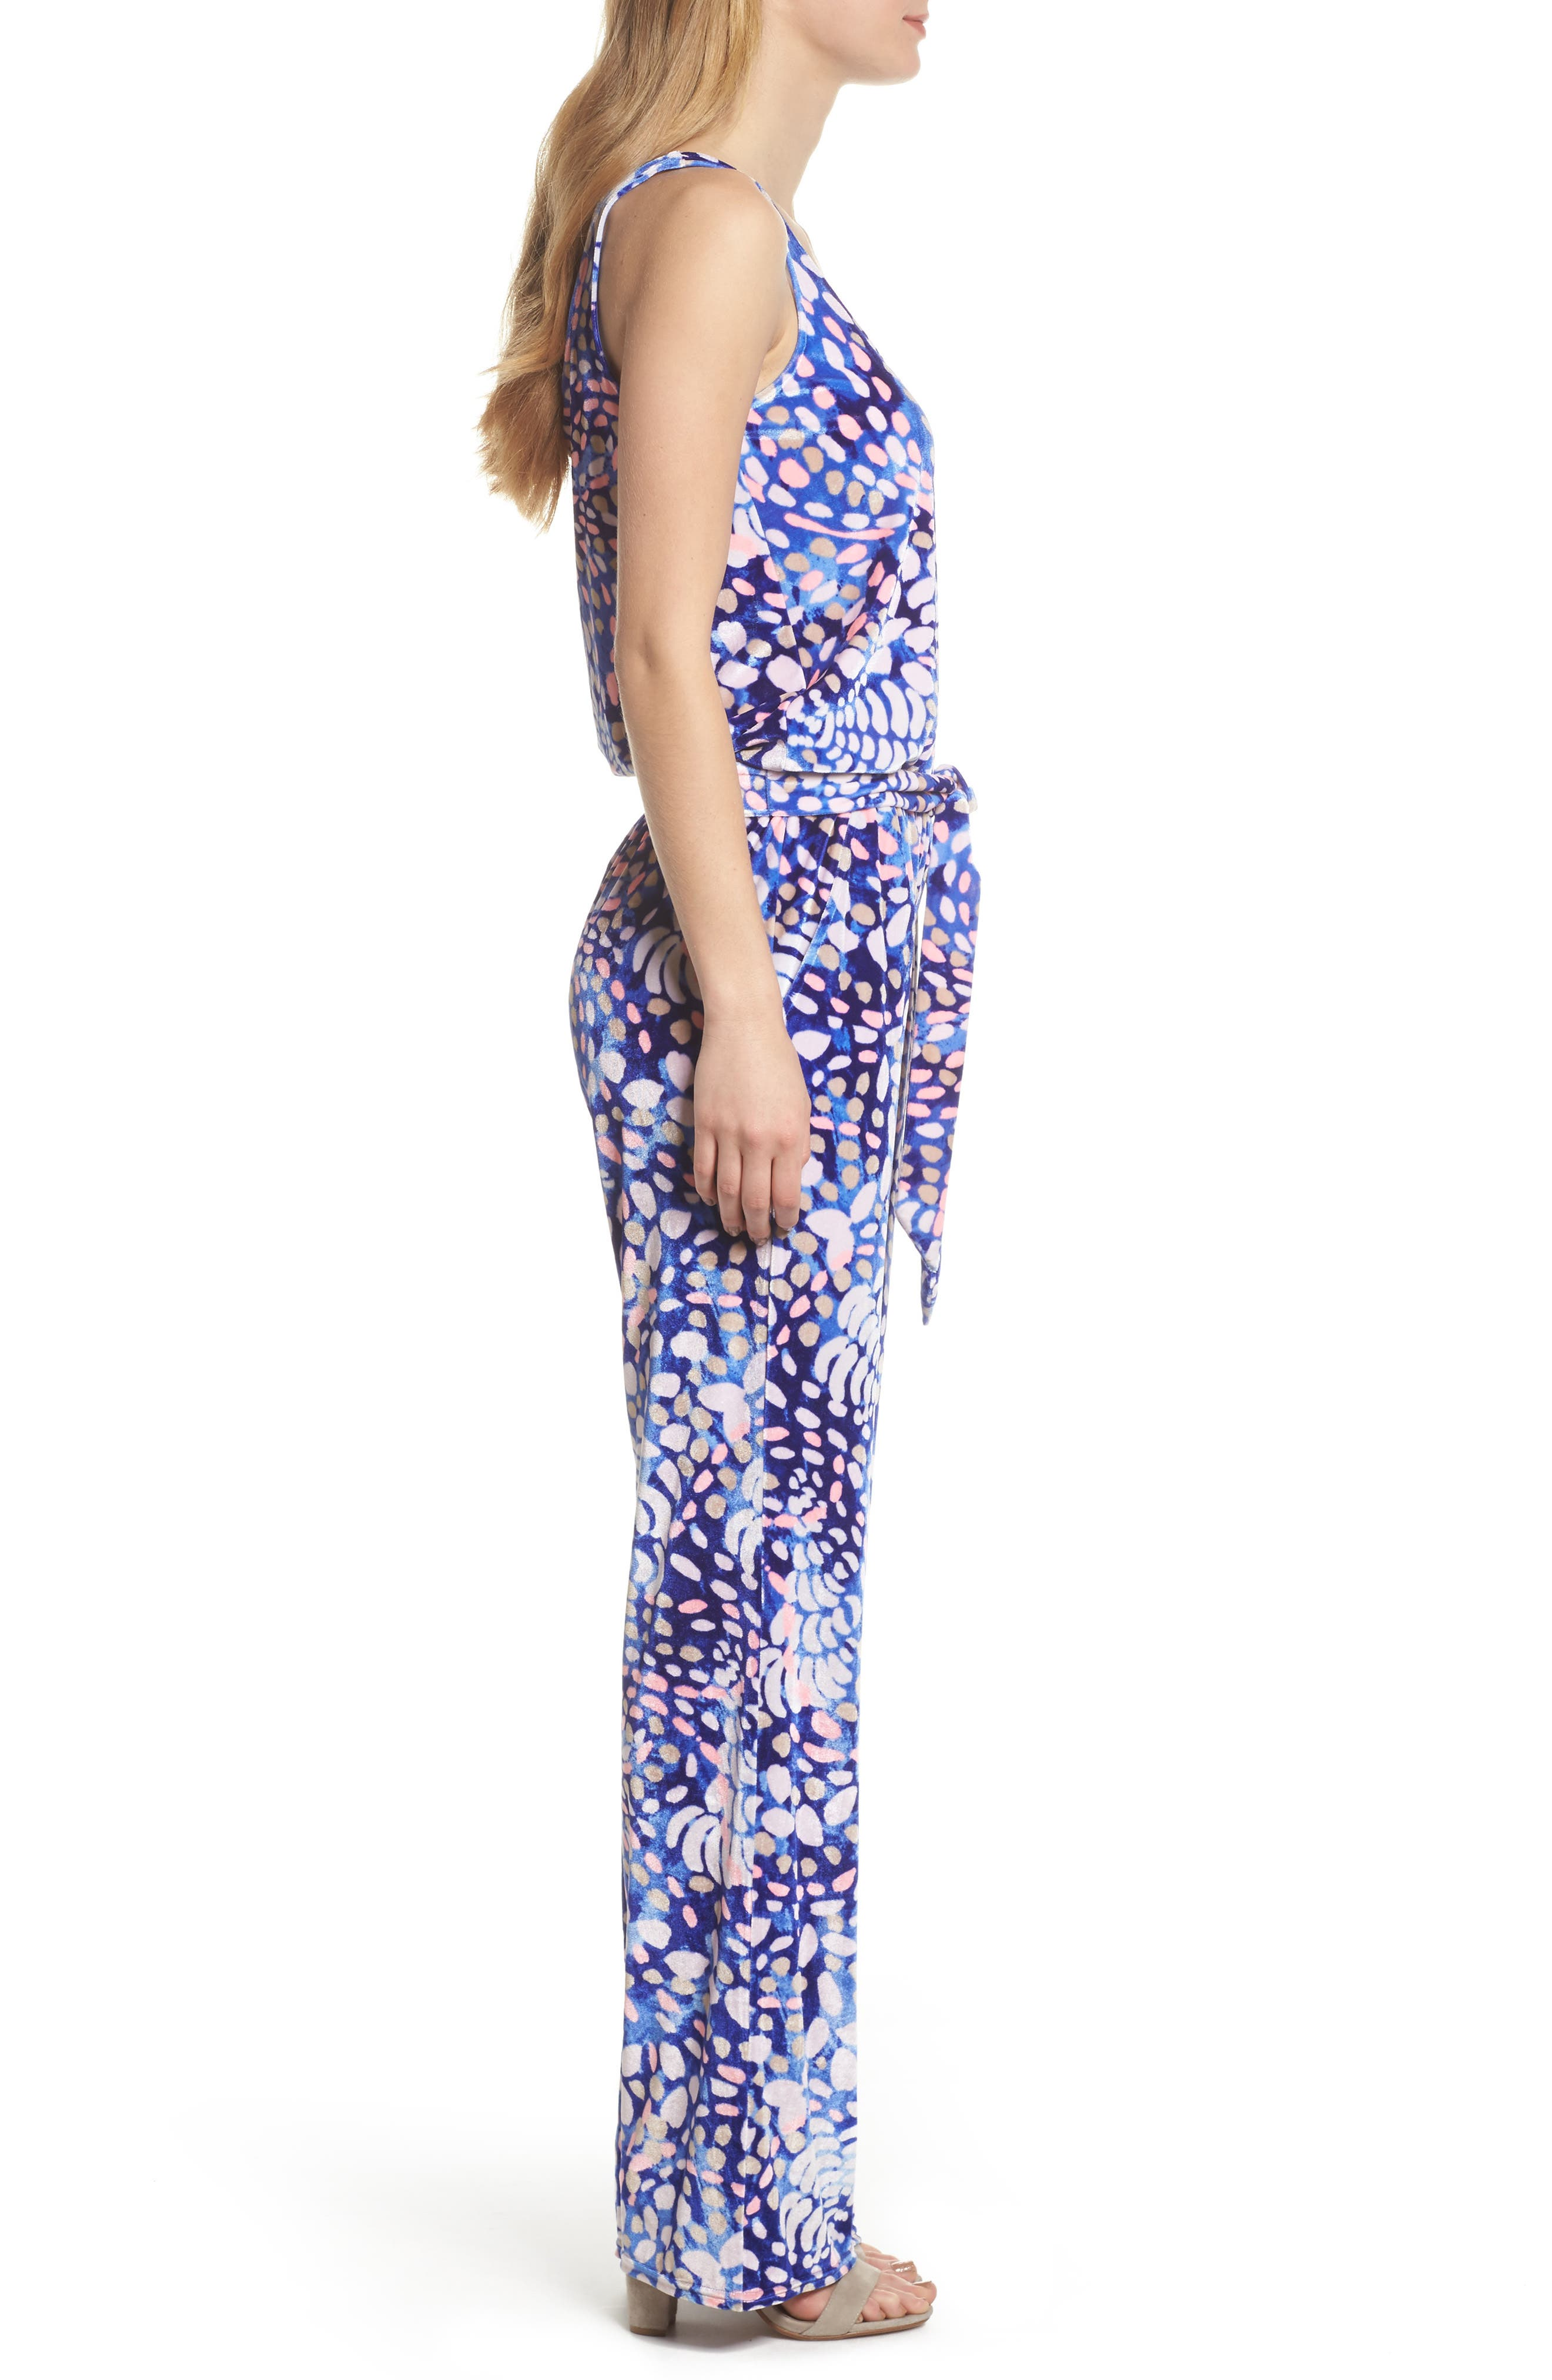 Nena Velour Jumpsuit,                             Alternate thumbnail 3, color,                             Beckon Blue Sparkling Grotto